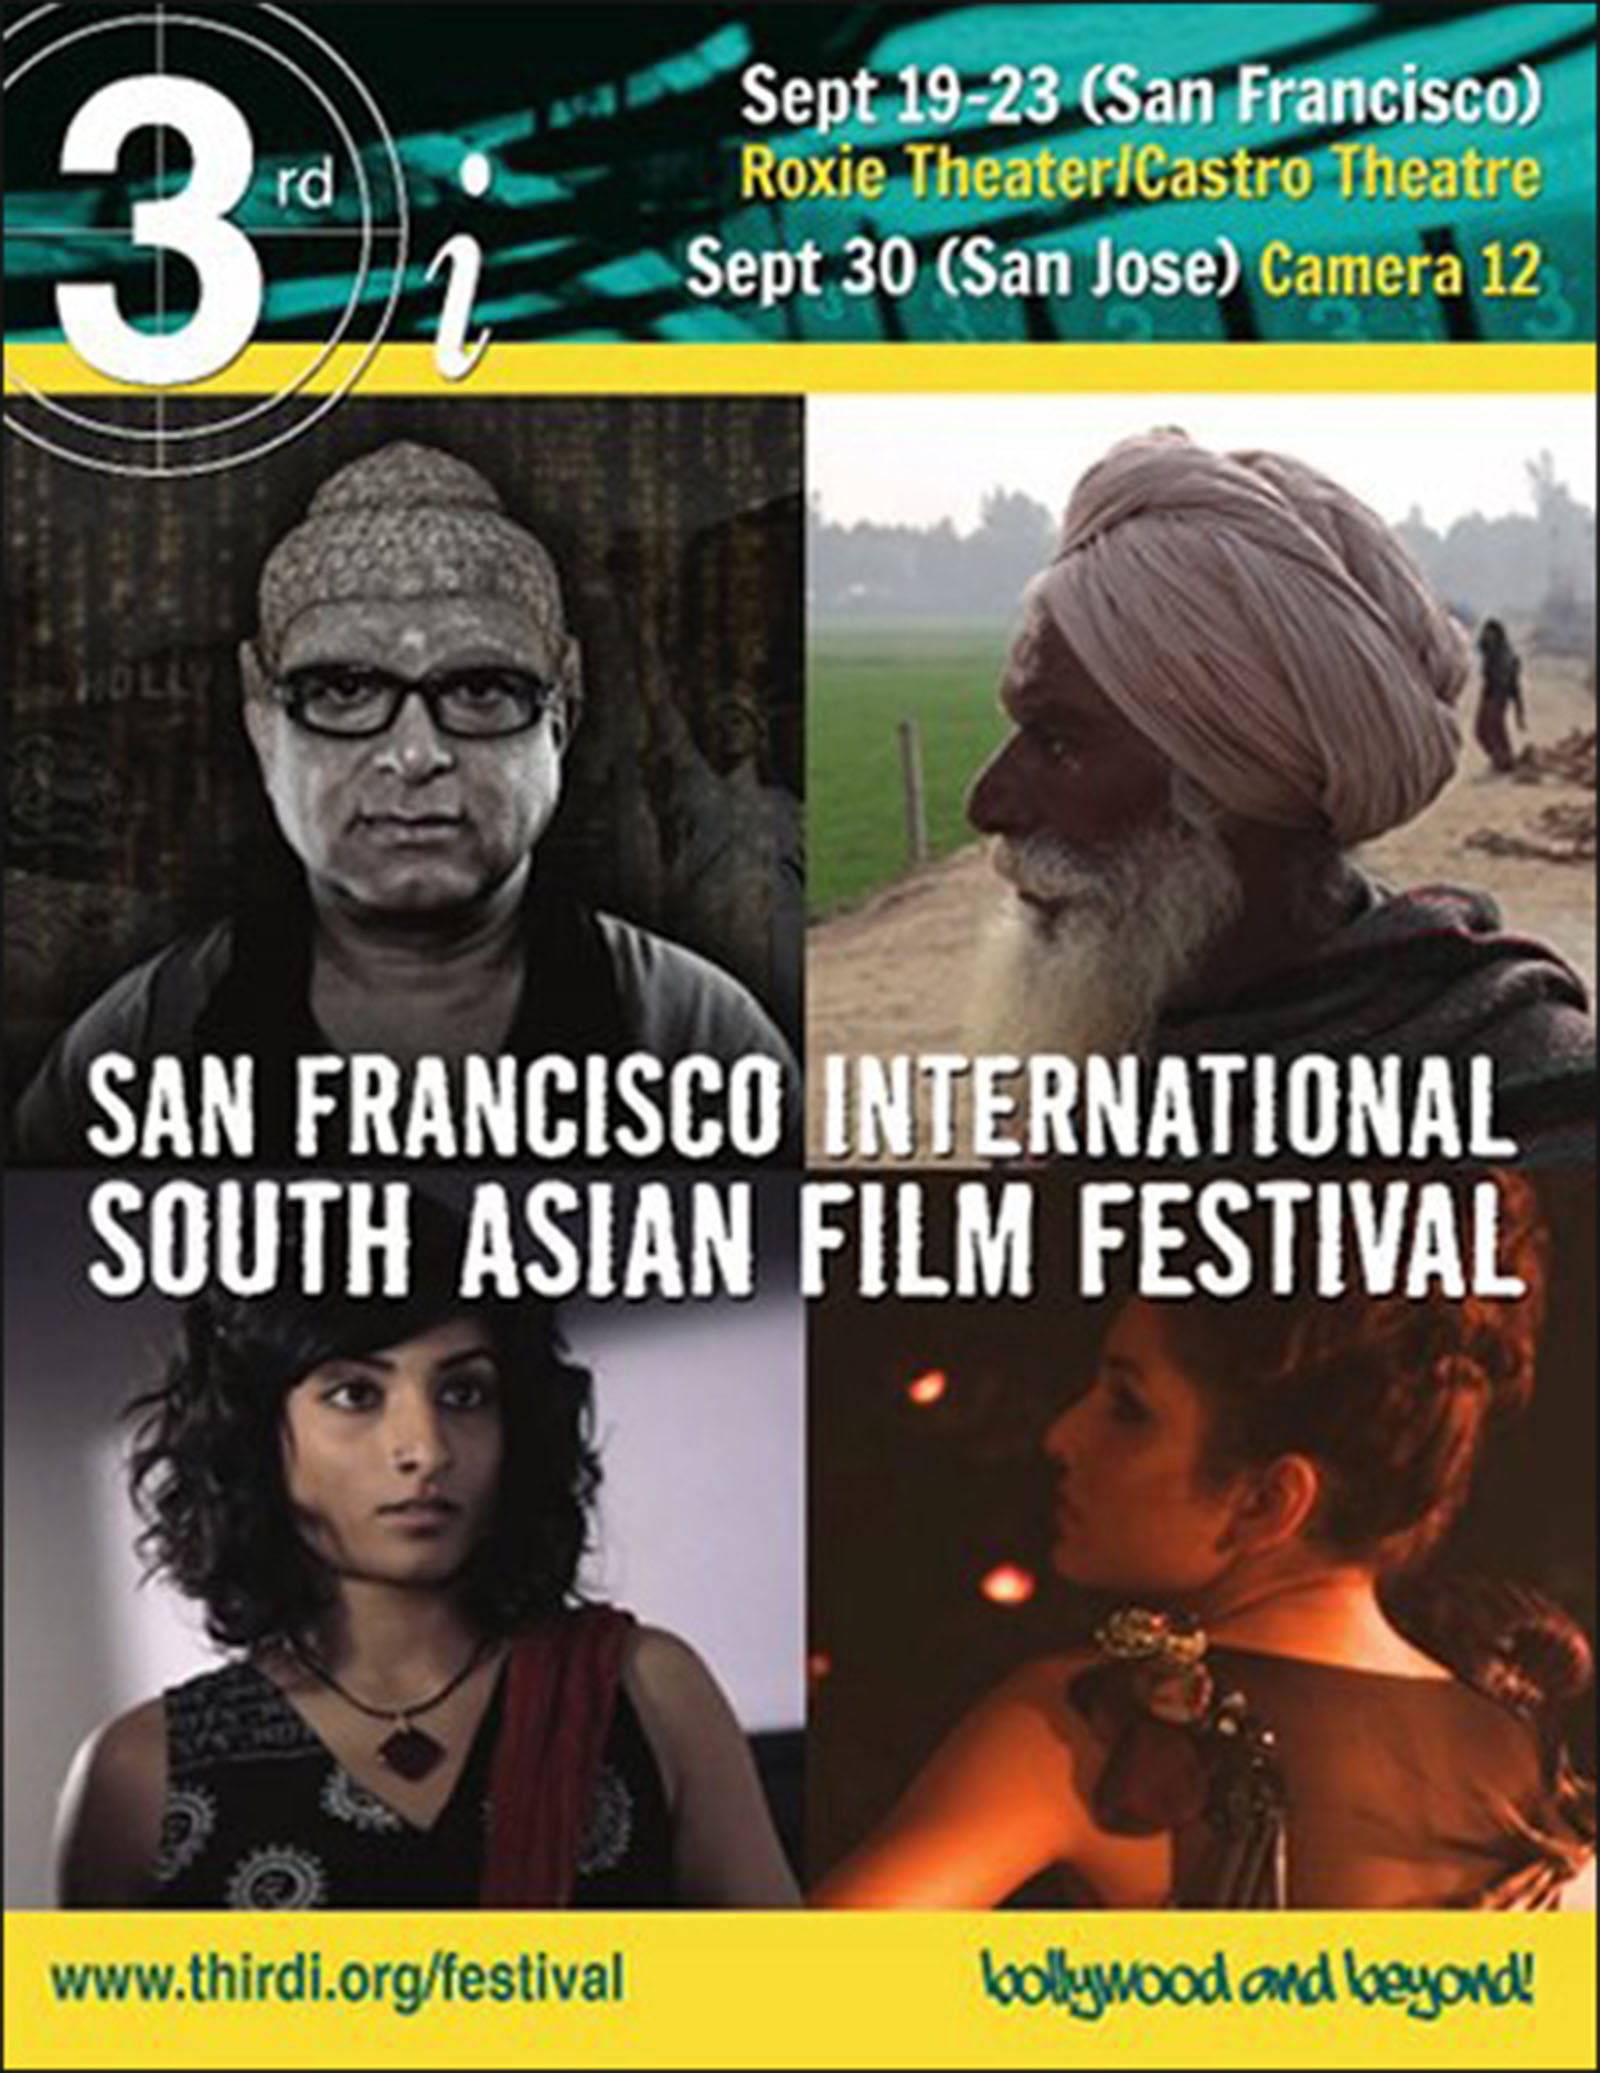 The San Francisco International South Asian Film Festival Ends This Weekend